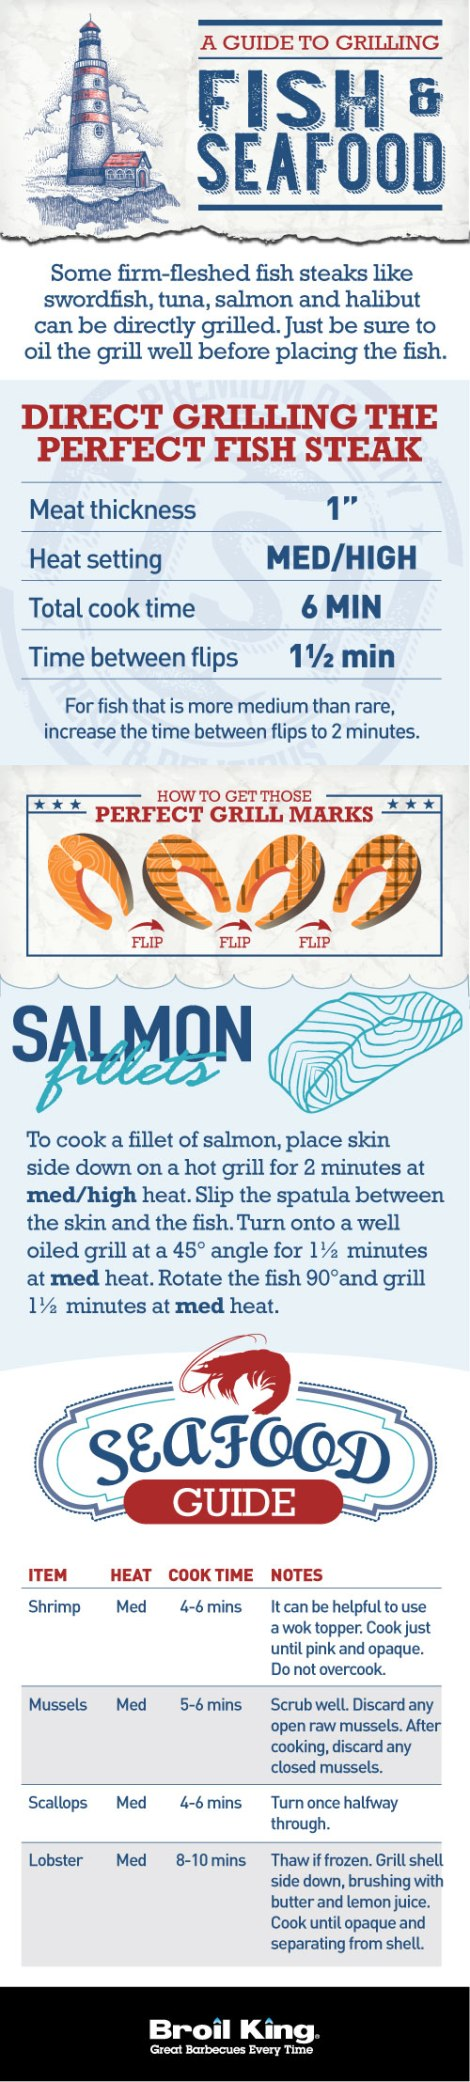 Guide to Grilling Fish and Seafood